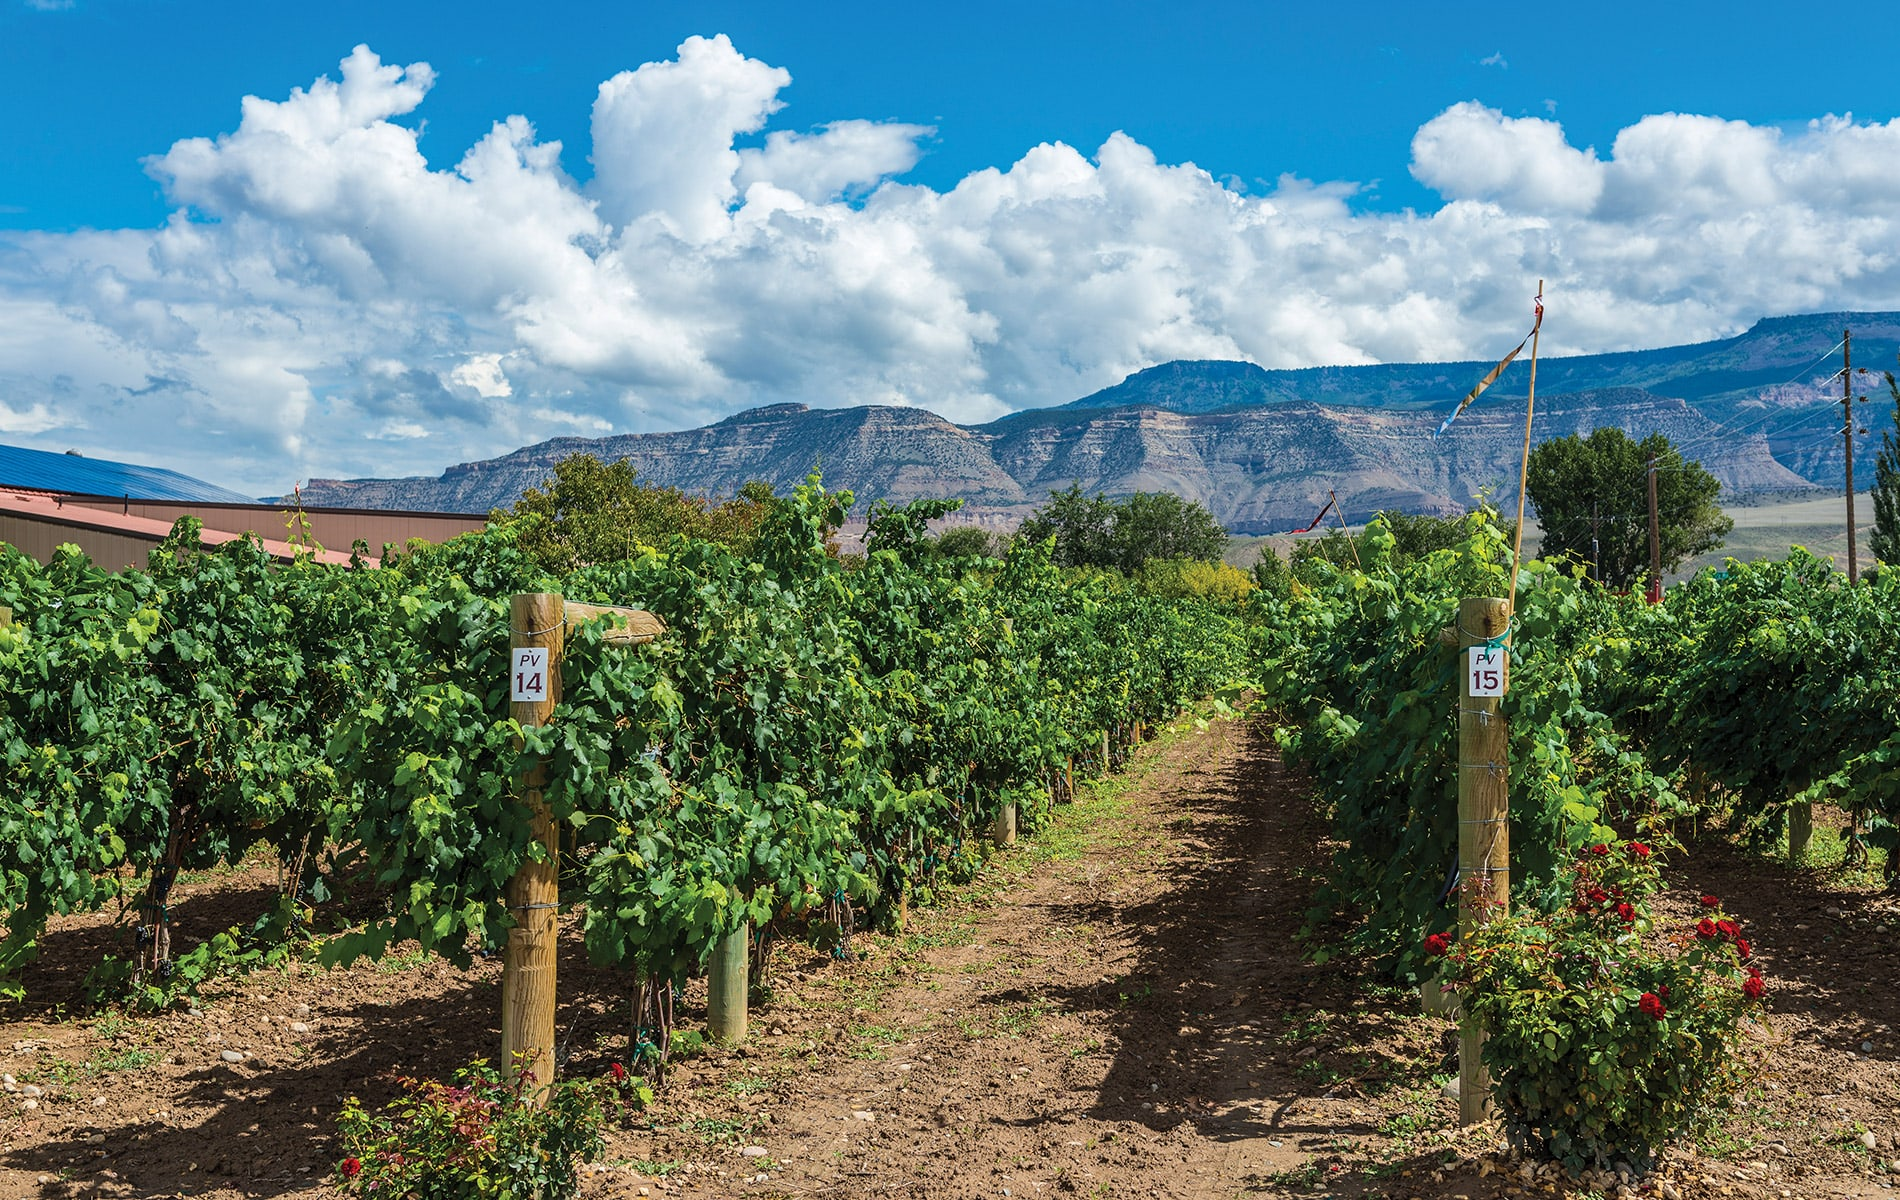 Warm days, cool nights, and high altitude contribute to the high quality of grapes grown in the Grand Valley region in western Colorado.